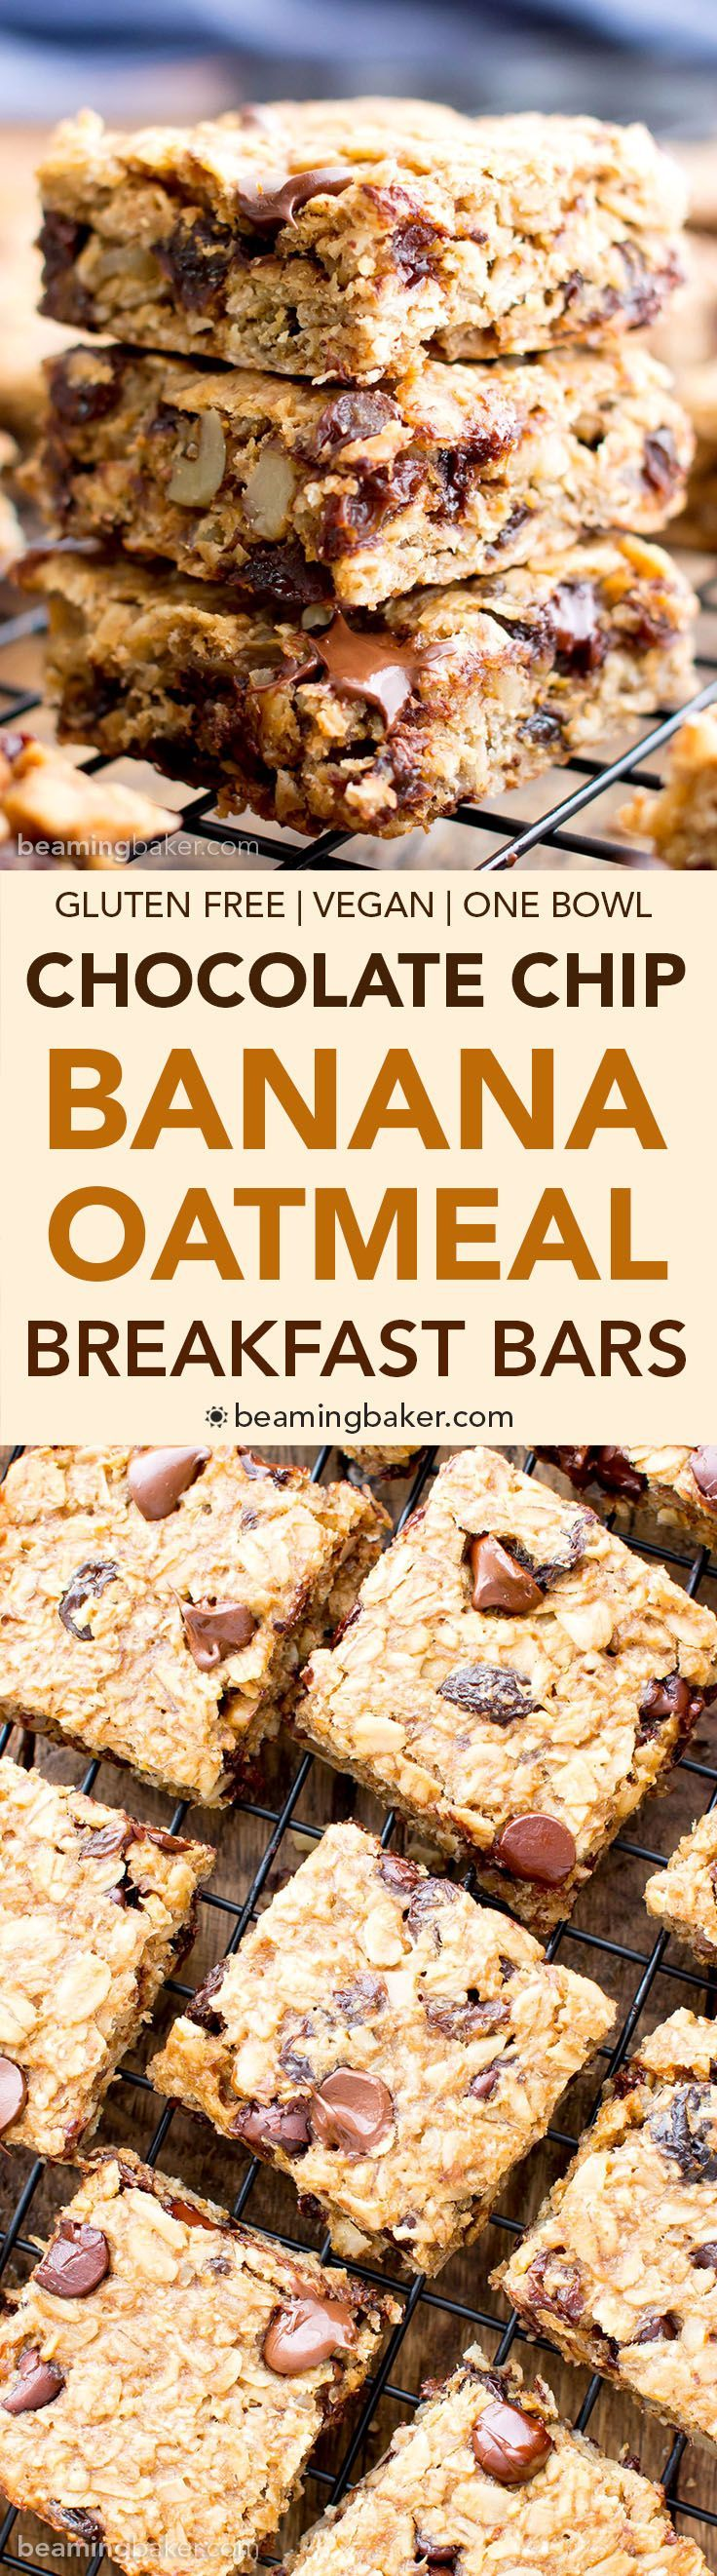 Gluten Free Banana Chocolate Chip Oatmeal Breakfast Bars (V, GF): a one bowl recipe for simply delicious banana breakfast bars packed with your favorites for a good morning! #Vegan #GlutenFree #DairyF